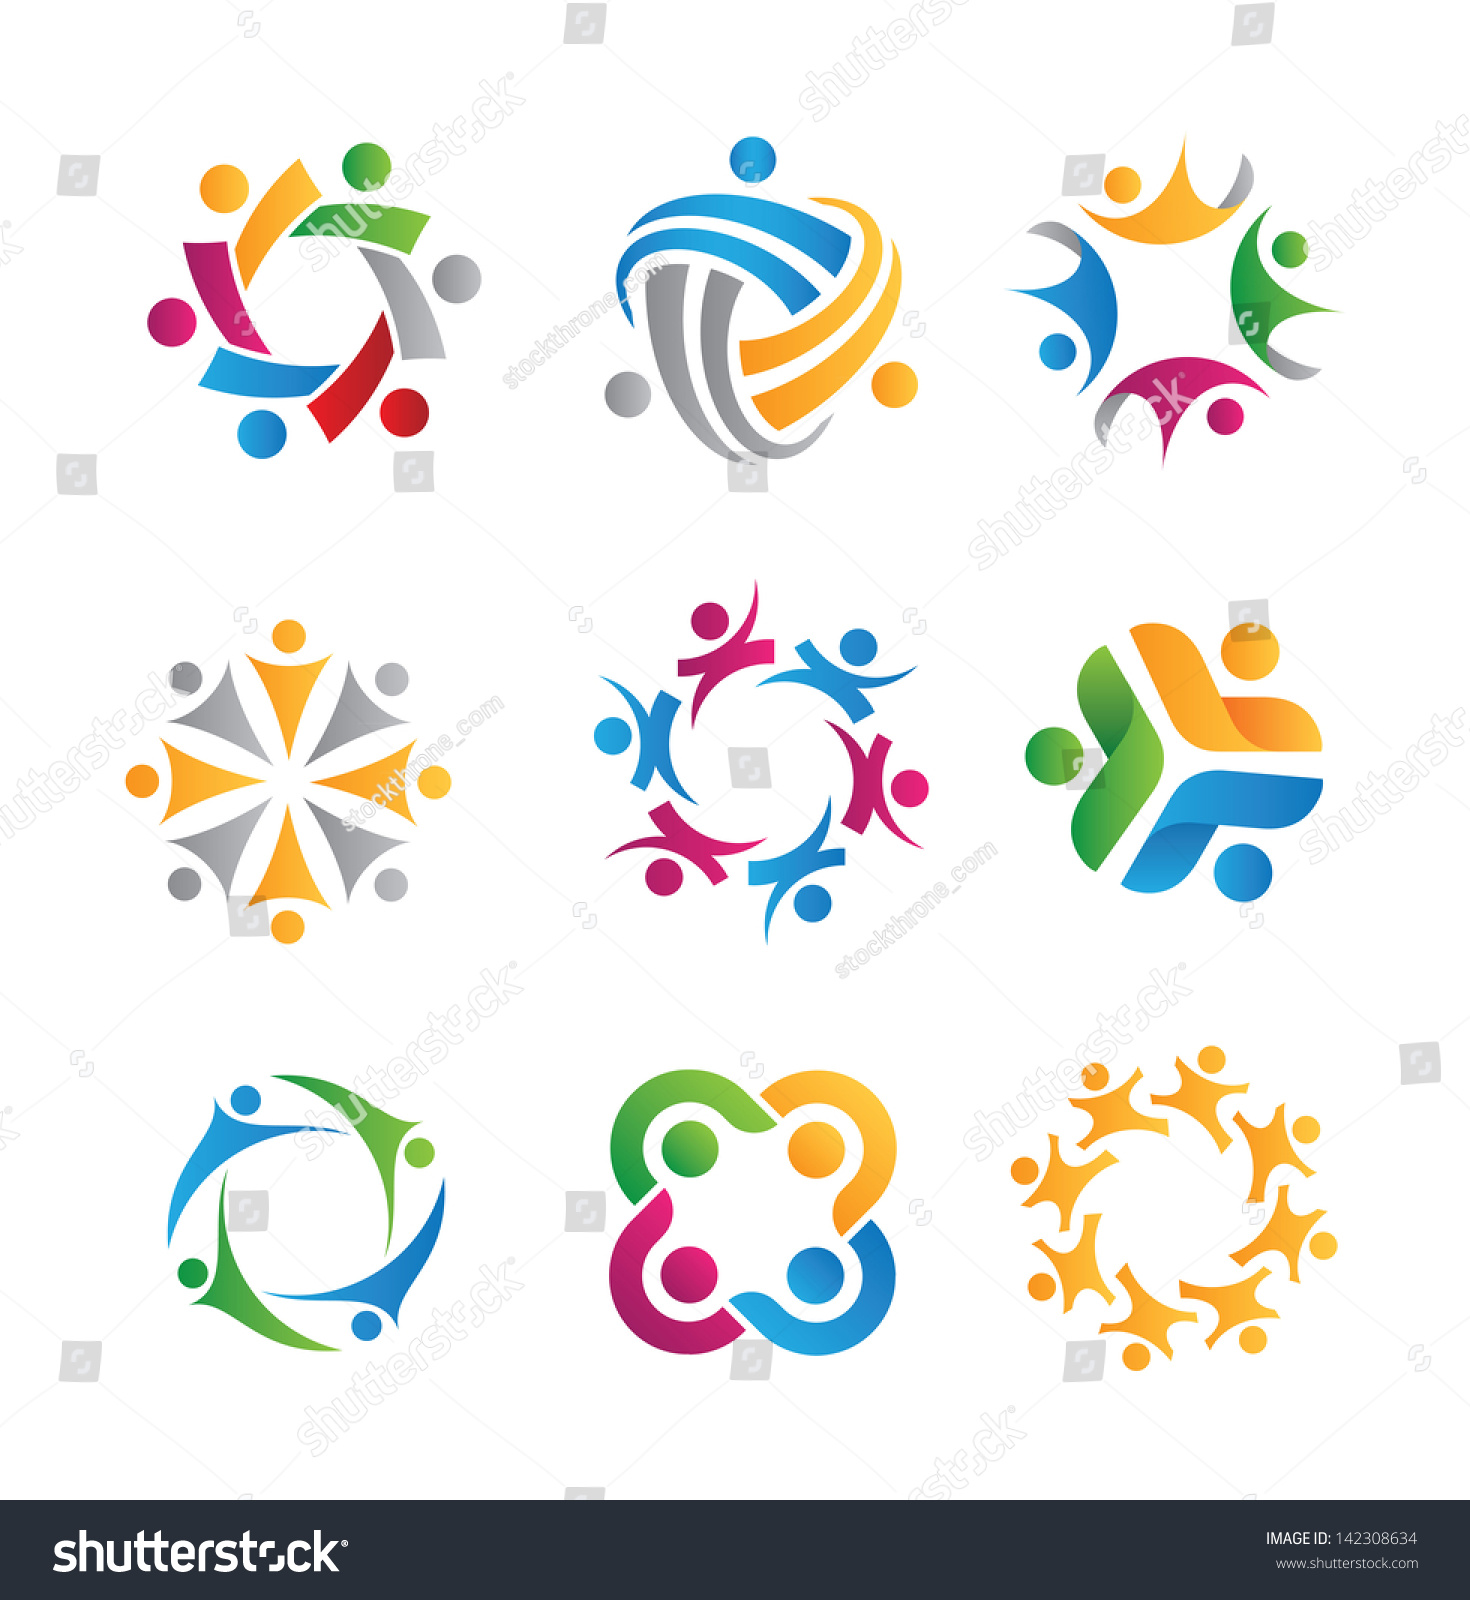 Social relationship logo icon stock vector 142308634 for Relation sociale